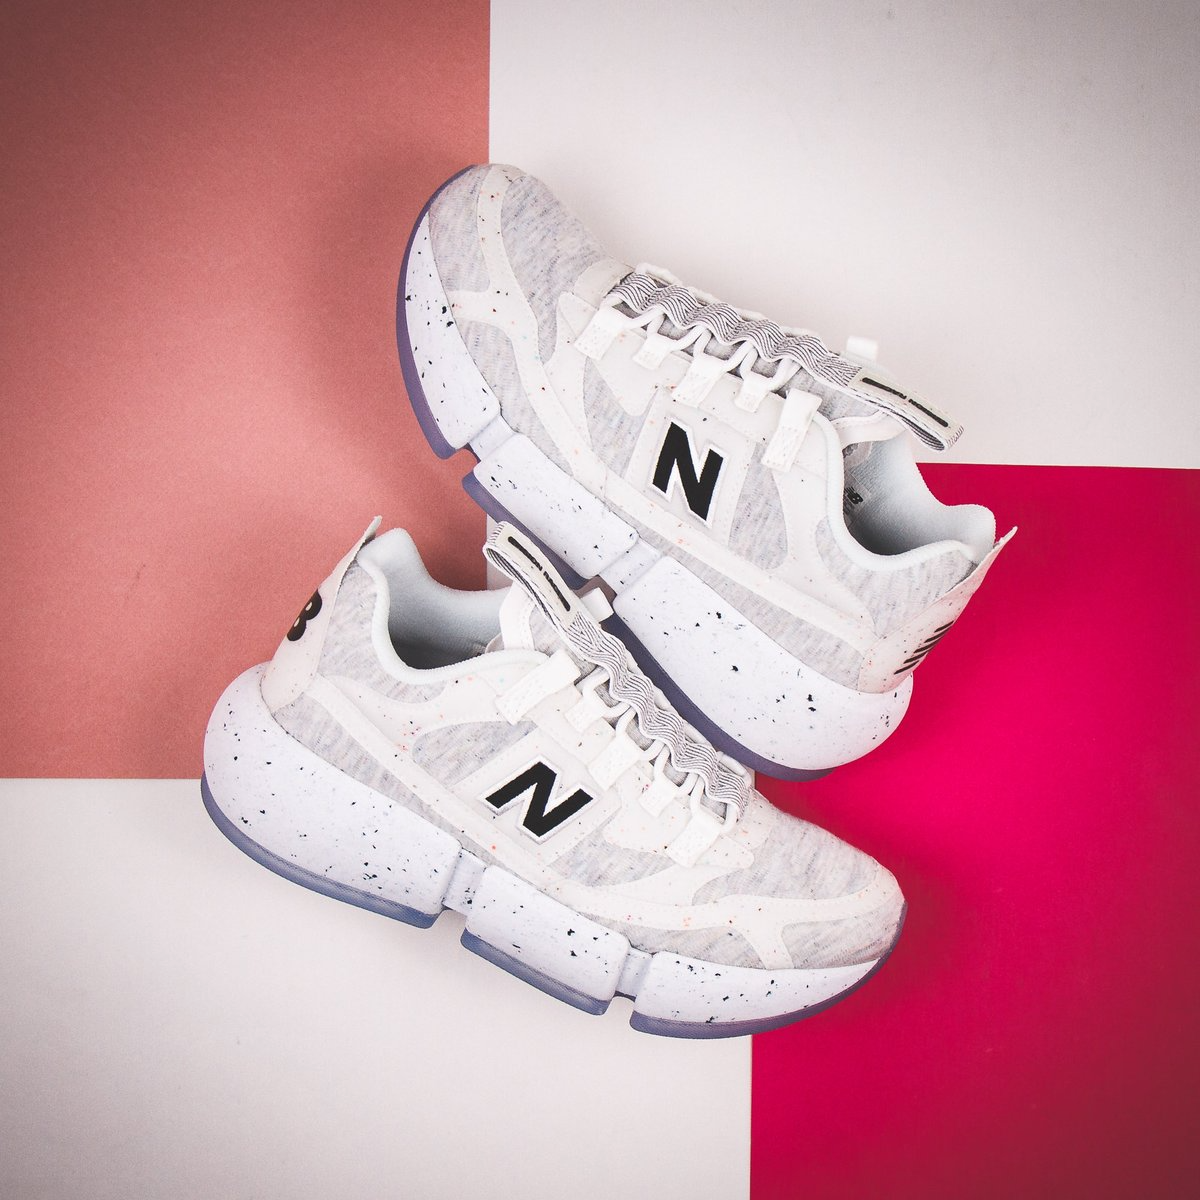 """Jaden Smith x New Balance Vision Racer """"Natural"""": Sale Price: $120 (Retail $150)  – FREE SHIPPING – use code:  – SCR20 –  at checkout"""